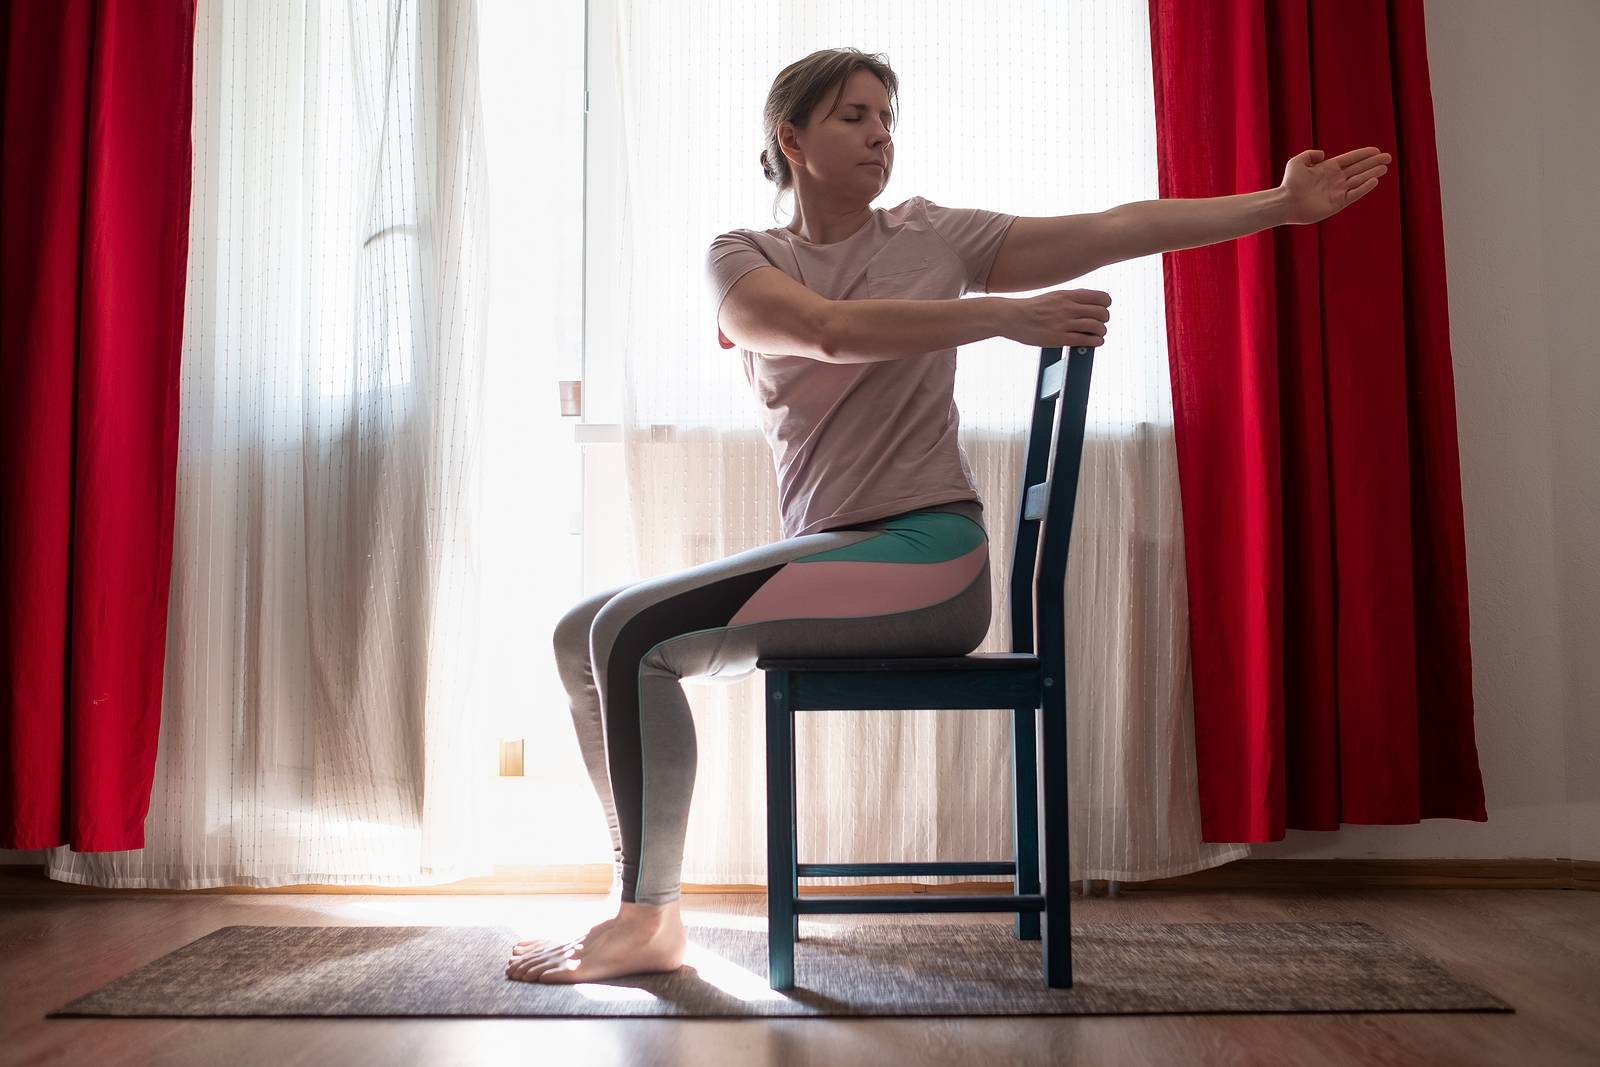 Woman working out doing yoga or pilates exercise using chair